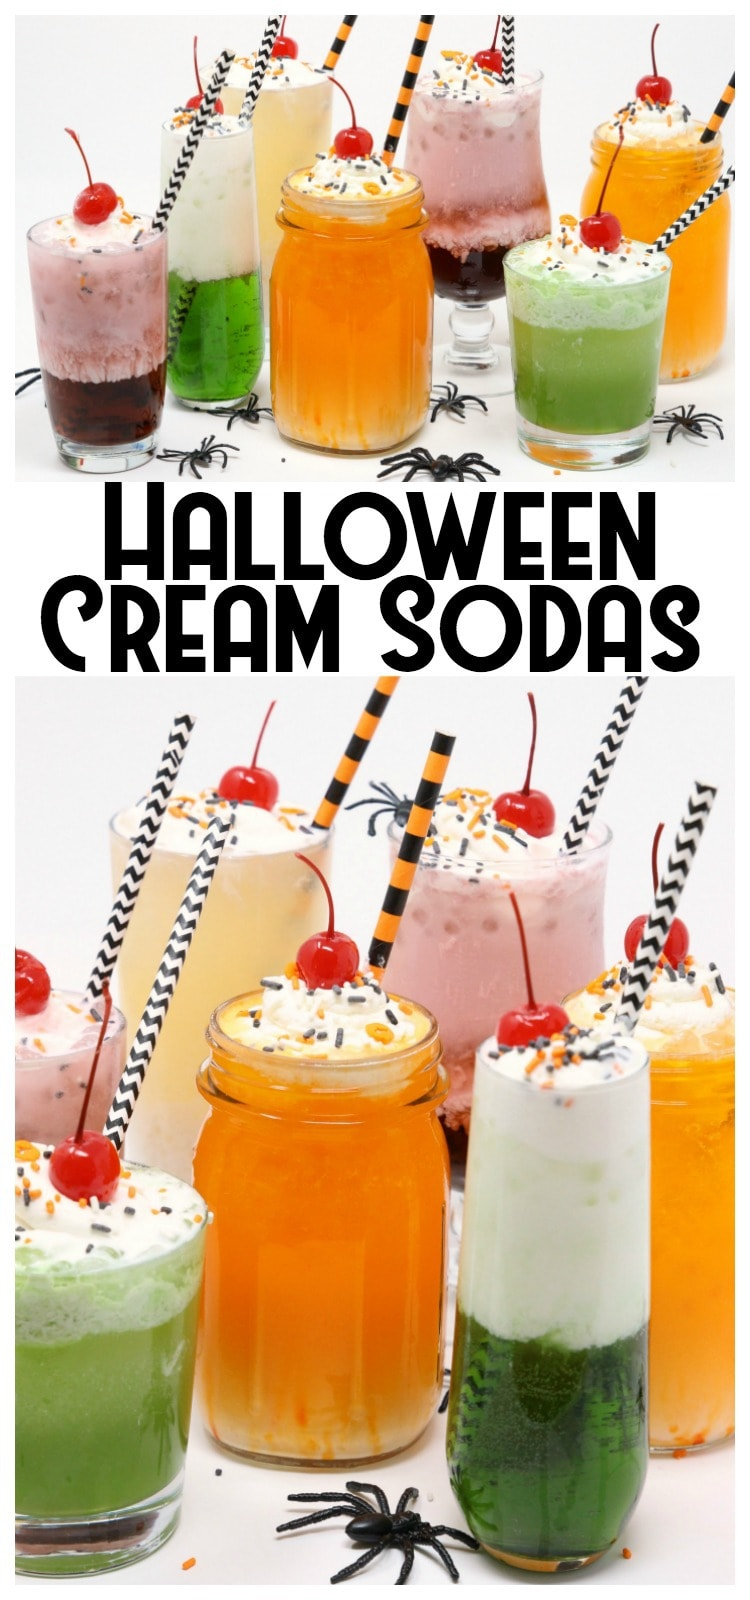 Halloween Cream Sodas made with sweet syrups, cream and club soda are a delicious & festive addition to any Halloween party! Easy #Halloween #drink idea from Butter With A Side of Bread